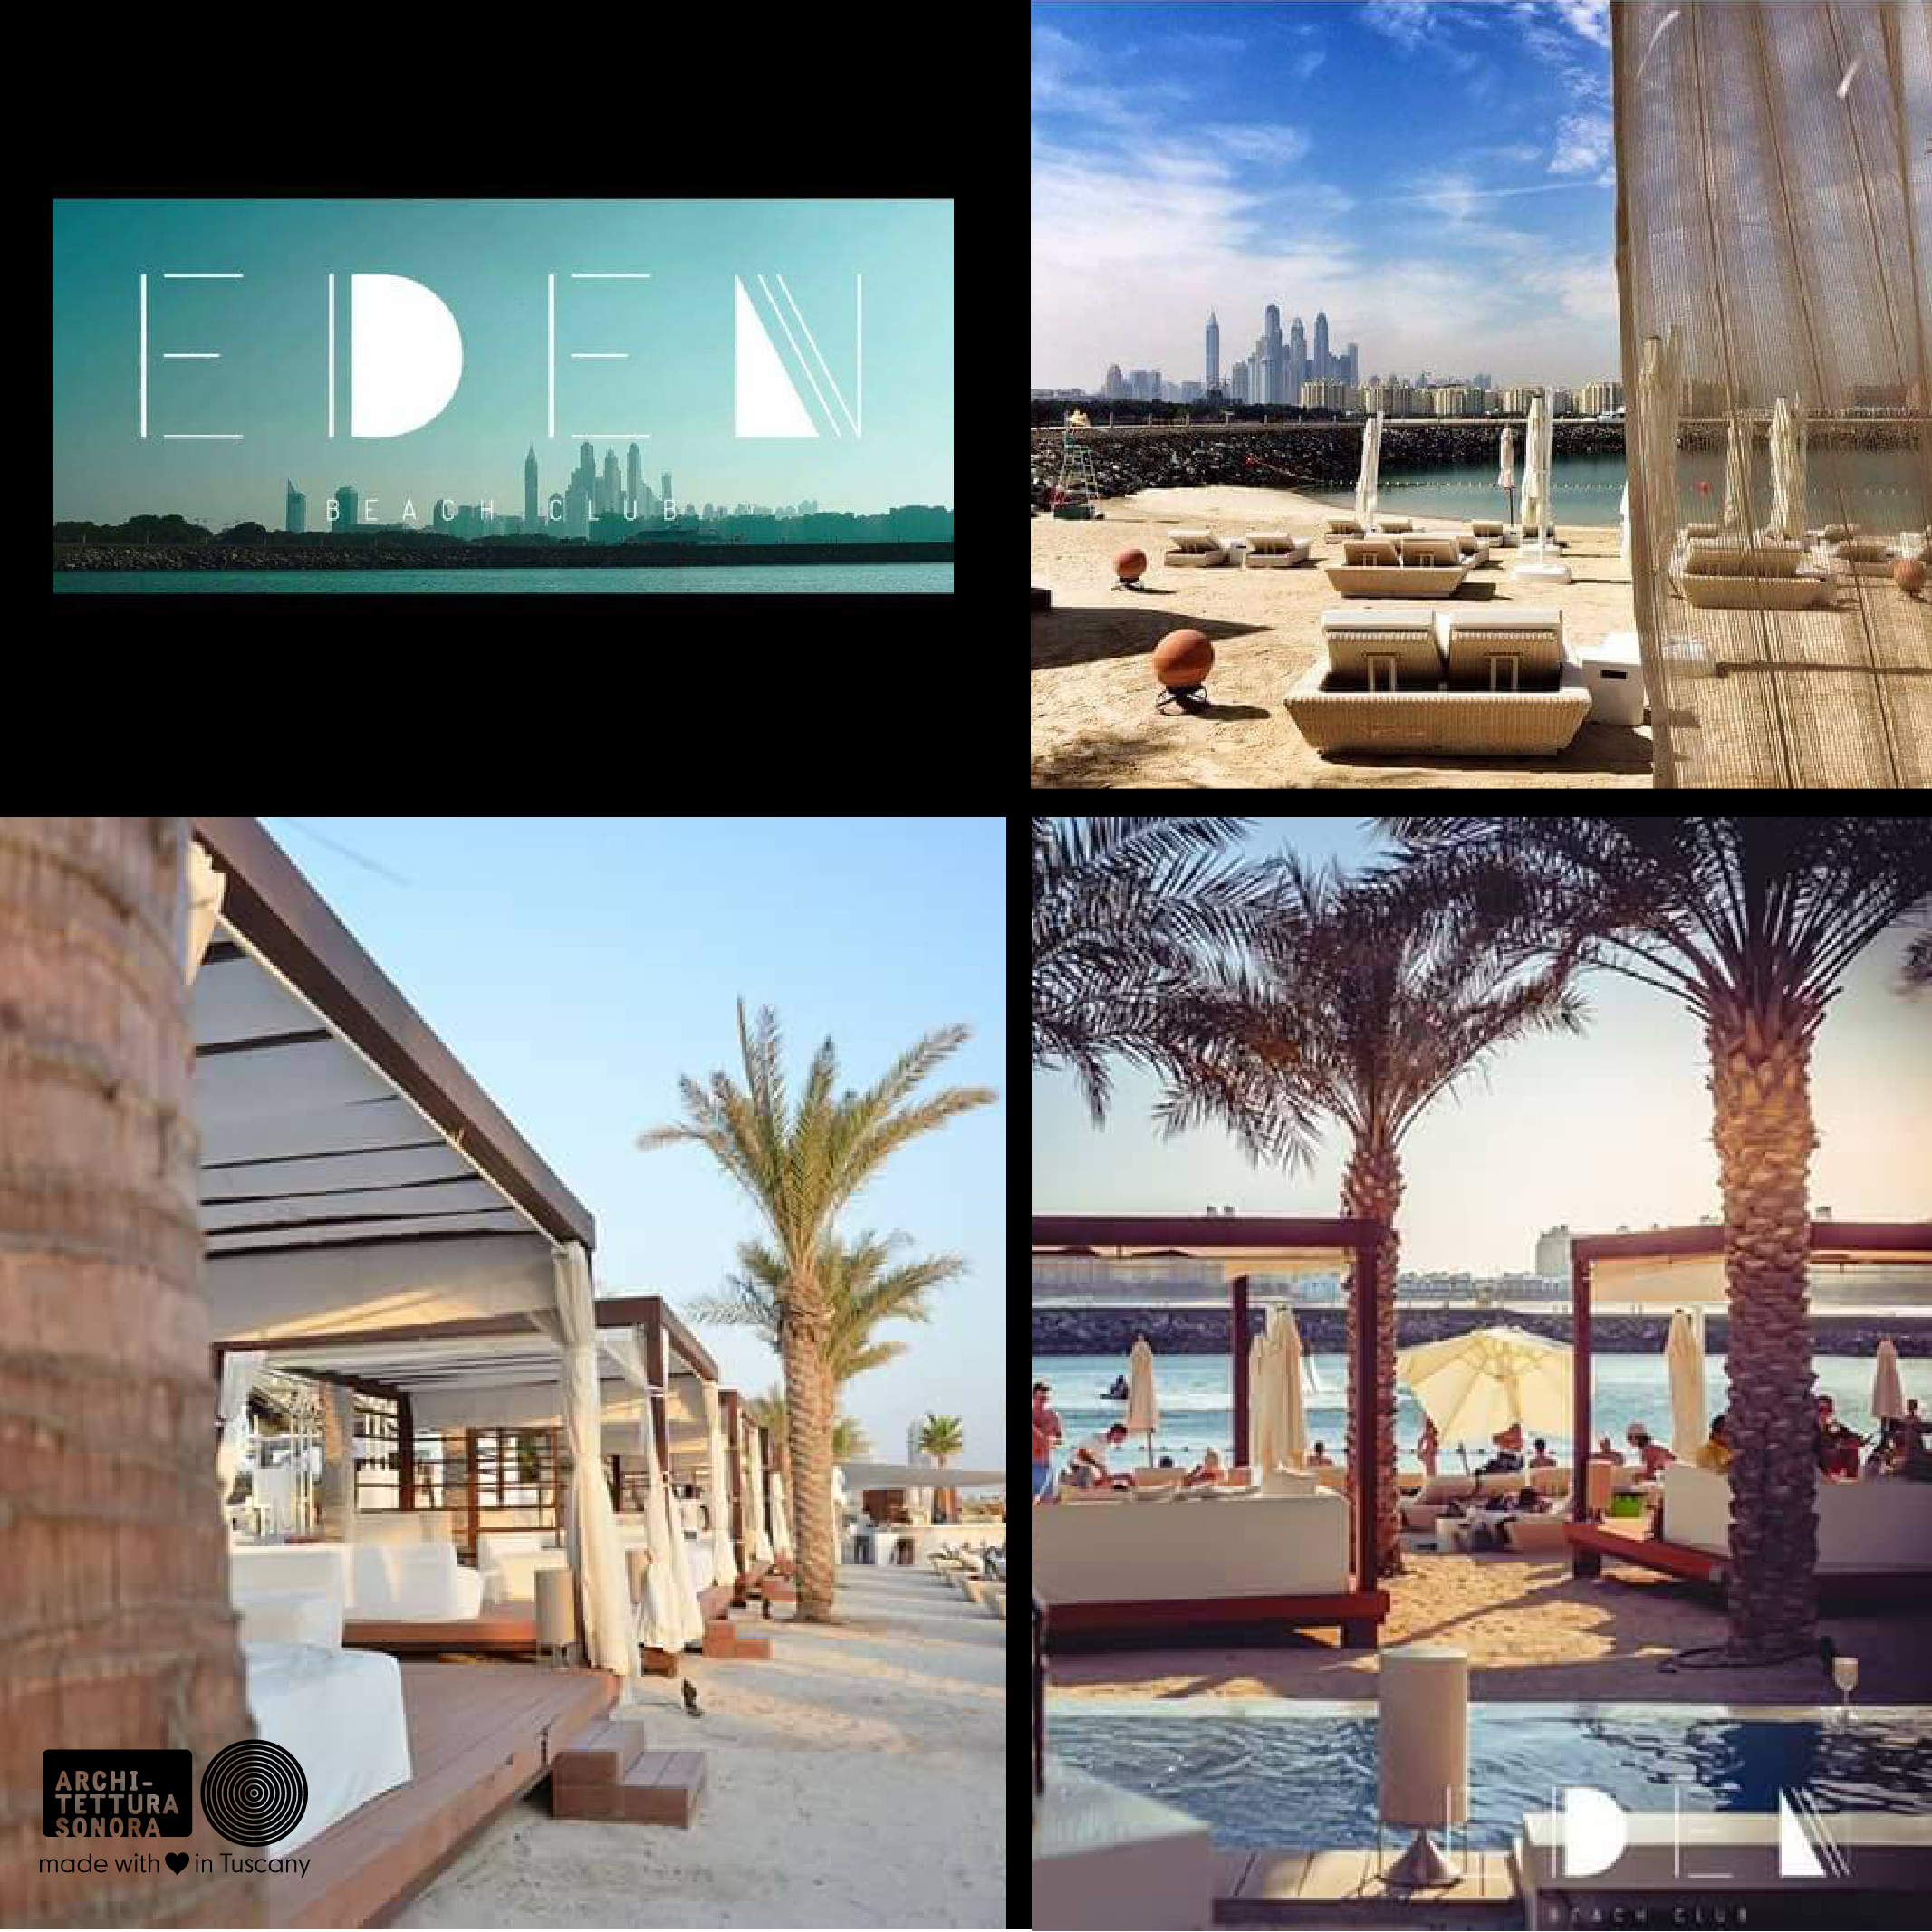 Eden is a day on the beach @EdenBeachDubai … with the natural outdoor sound of Architettura Sonora #PalmIsland #Eden #PalmDubai #OutdoorSound #ArchitetturaSonora #BestSound #21db #Soundmatters